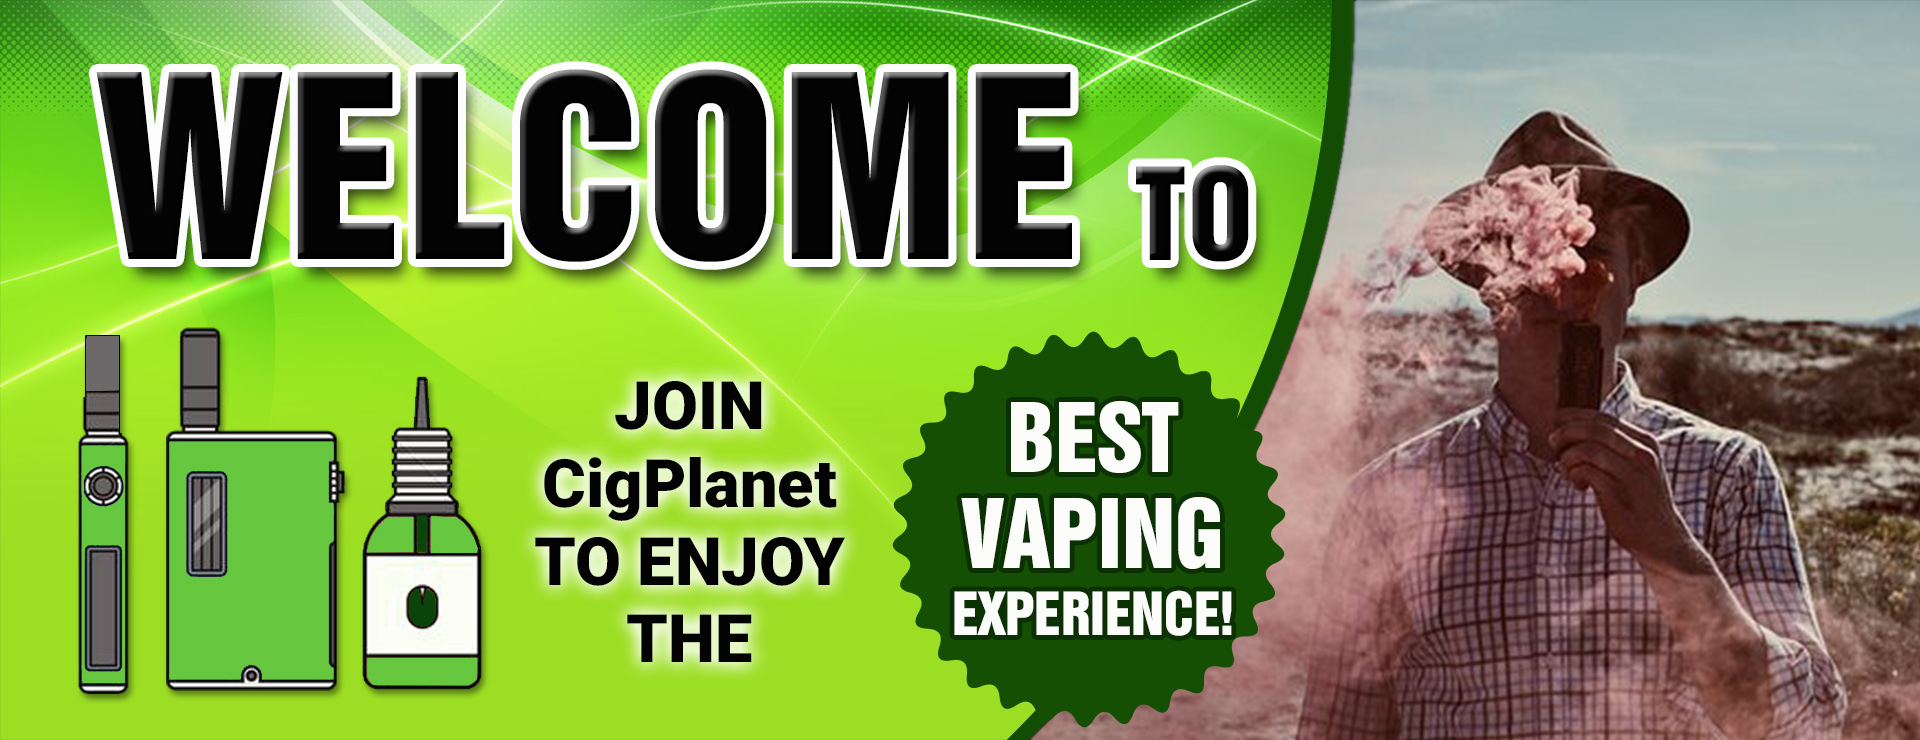 CigPlanet Coupon Codes and Coupons